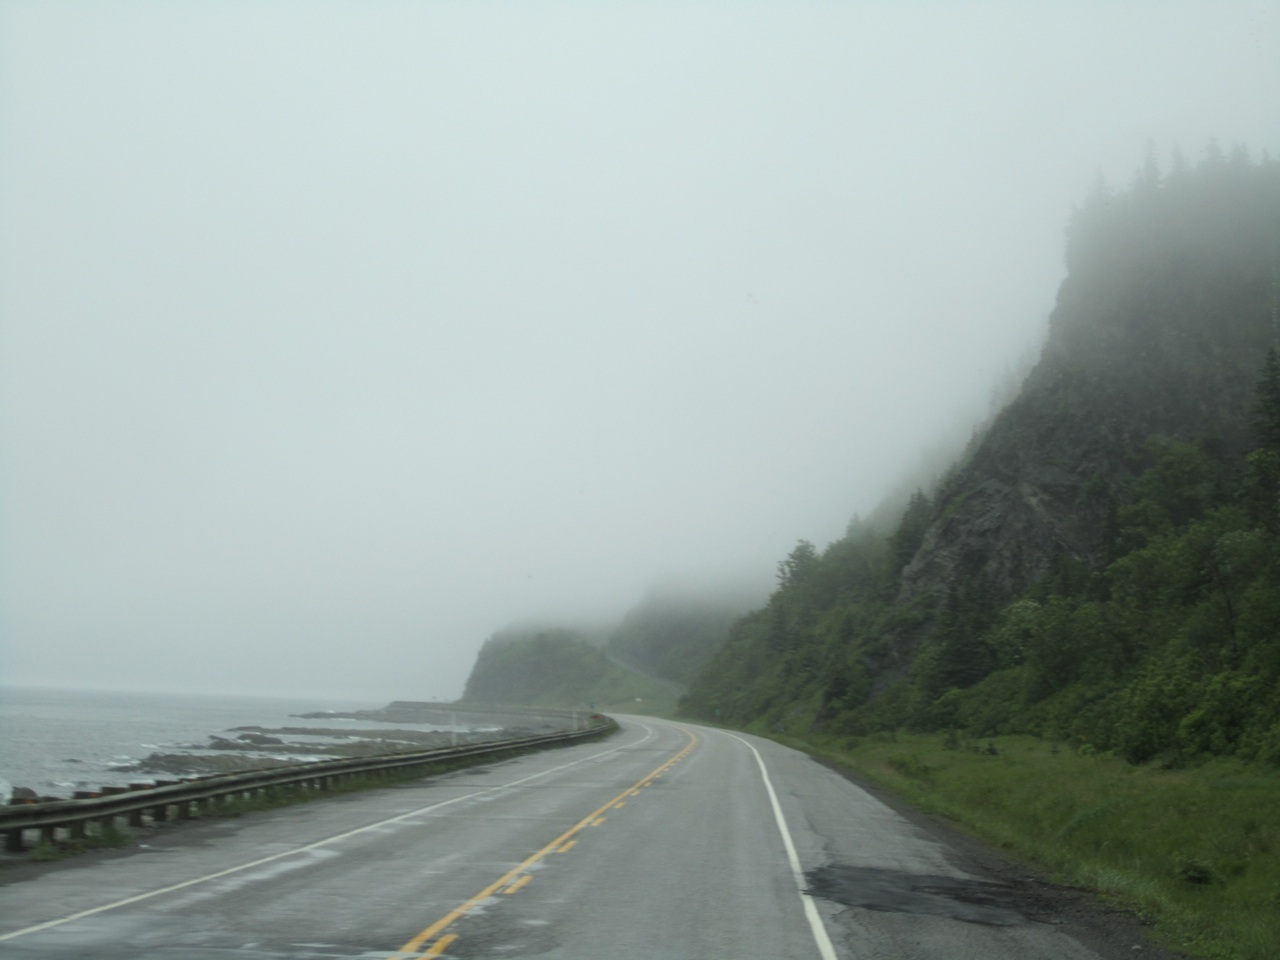 The Road Leading Into Fog.  Water On One Side And Mountains On The Other.